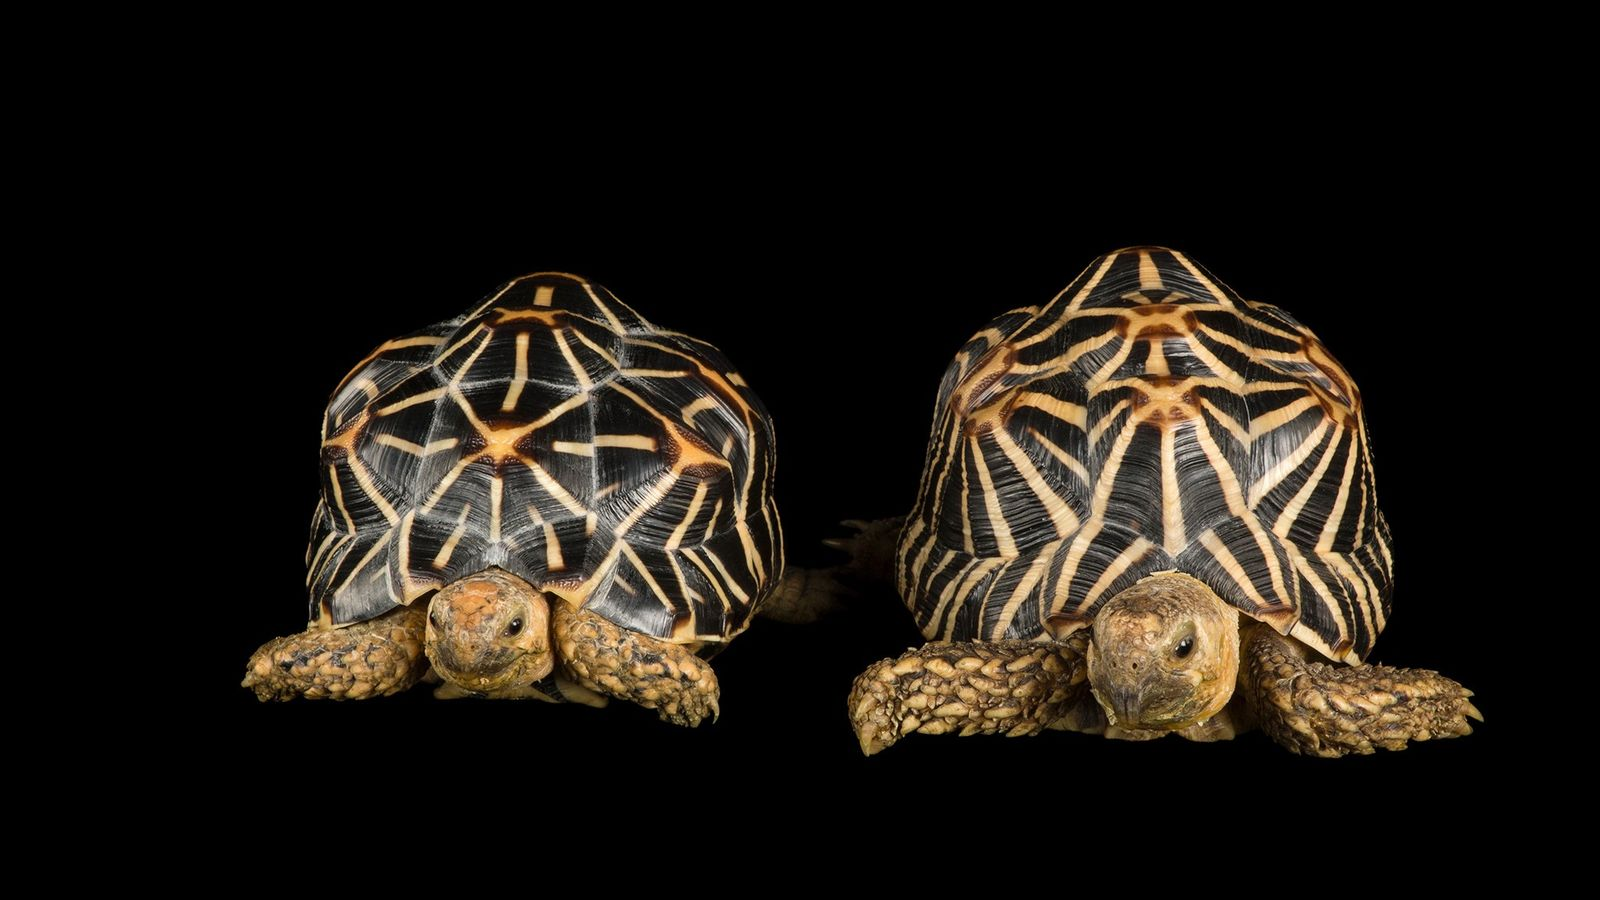 More than a thousand Indian star tortoises, a species with strict trade limitations under international law, ...